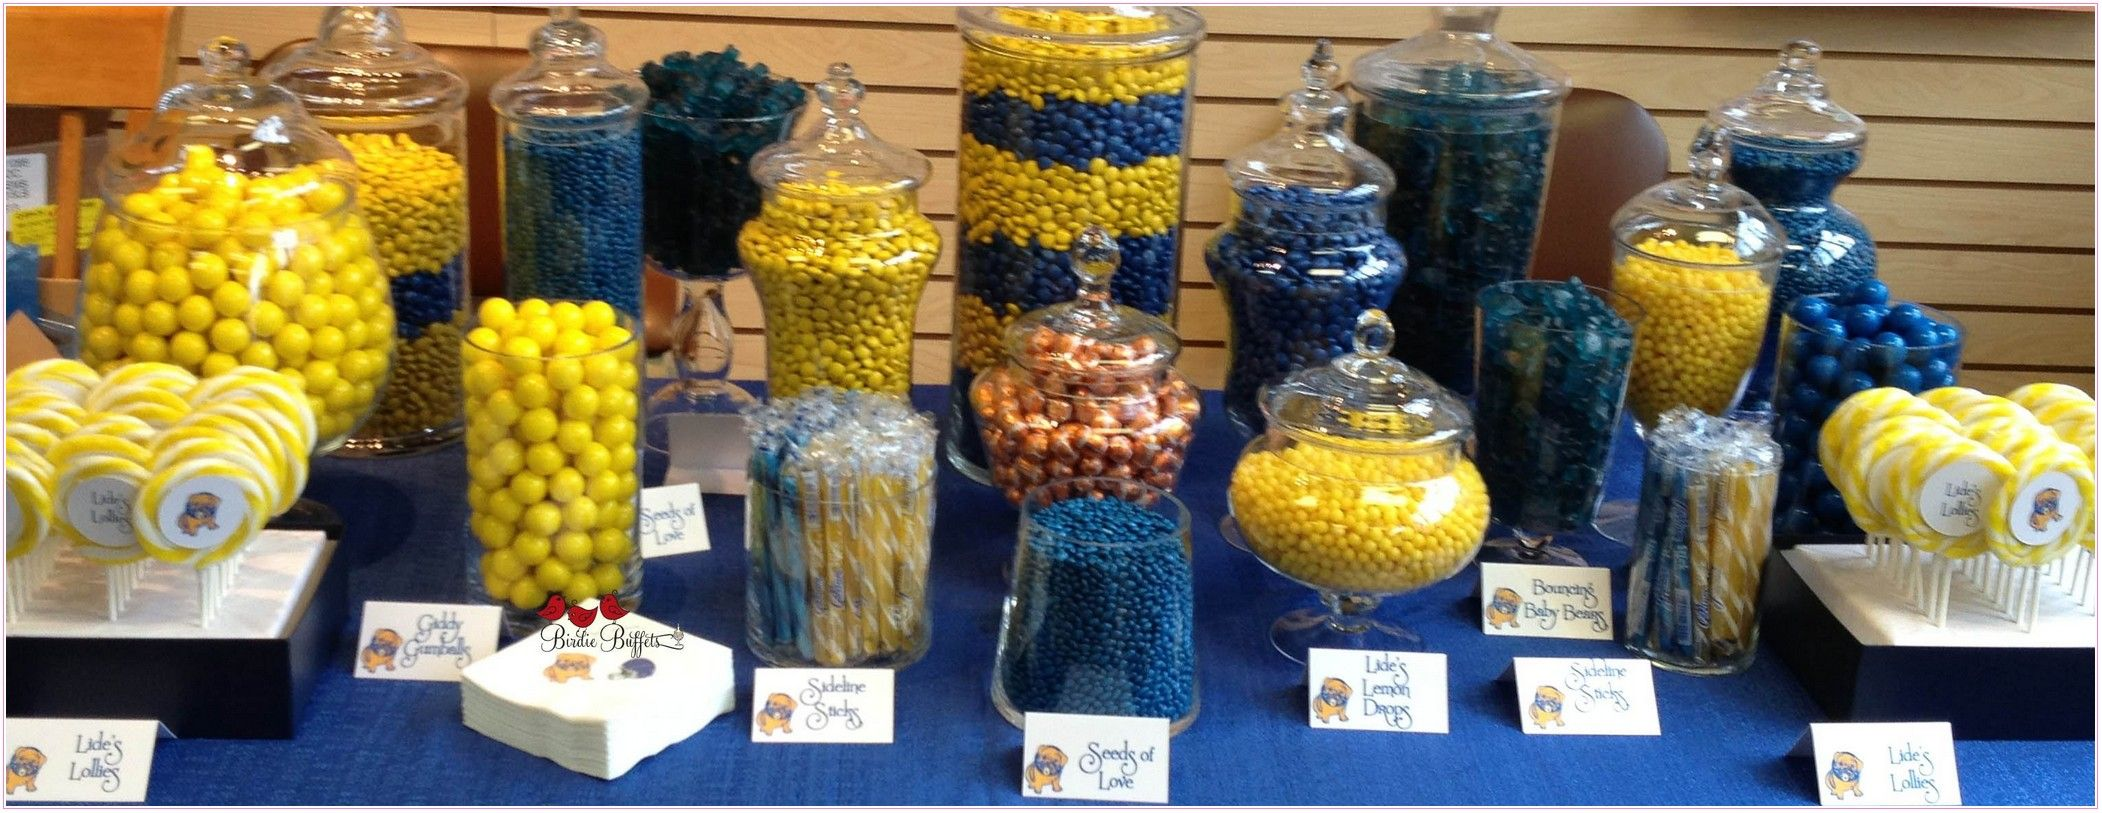 Blue And Yellow Candy Buffet All About Candy Okpdwyjabm Yellow Candy Buffet Yellow Candy Gold Candy Buffet